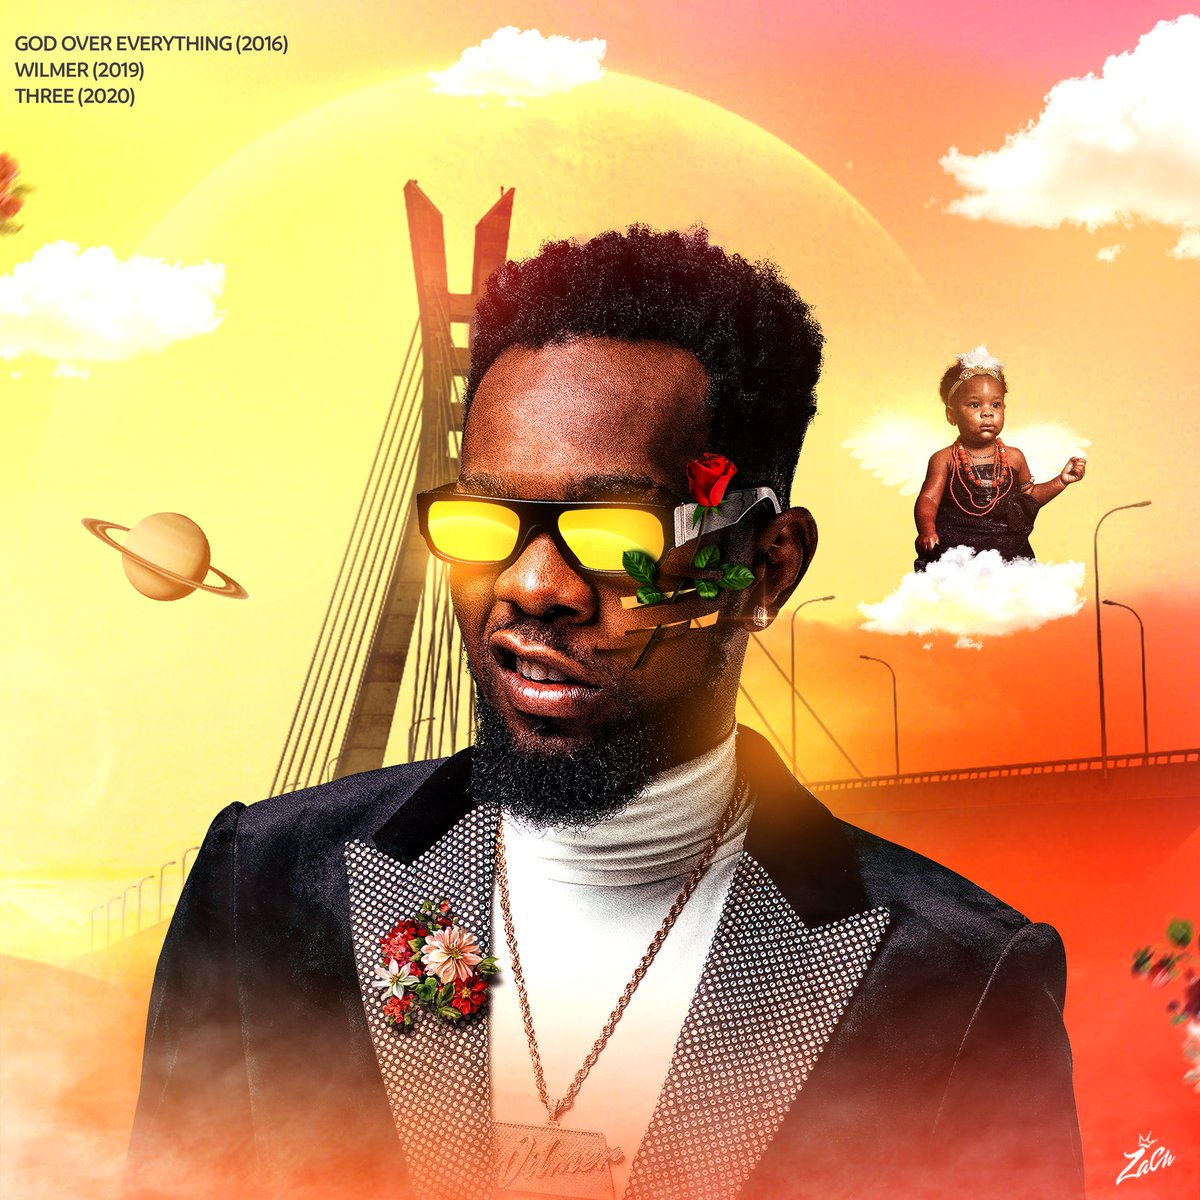 Music art and merch concept for @patorankingfire for a new song me sef Dont know yet loooll.. Help retweet and comment 🤲🤲 #2020Wrapped #ArtistOnTwitter #Lestweforget #JowoVideo #SaturdayMotivation #huncho #zugacoin #HipHop1MViews #peruzzi #JowoXNengi https://t.co/ePrLYNqSol